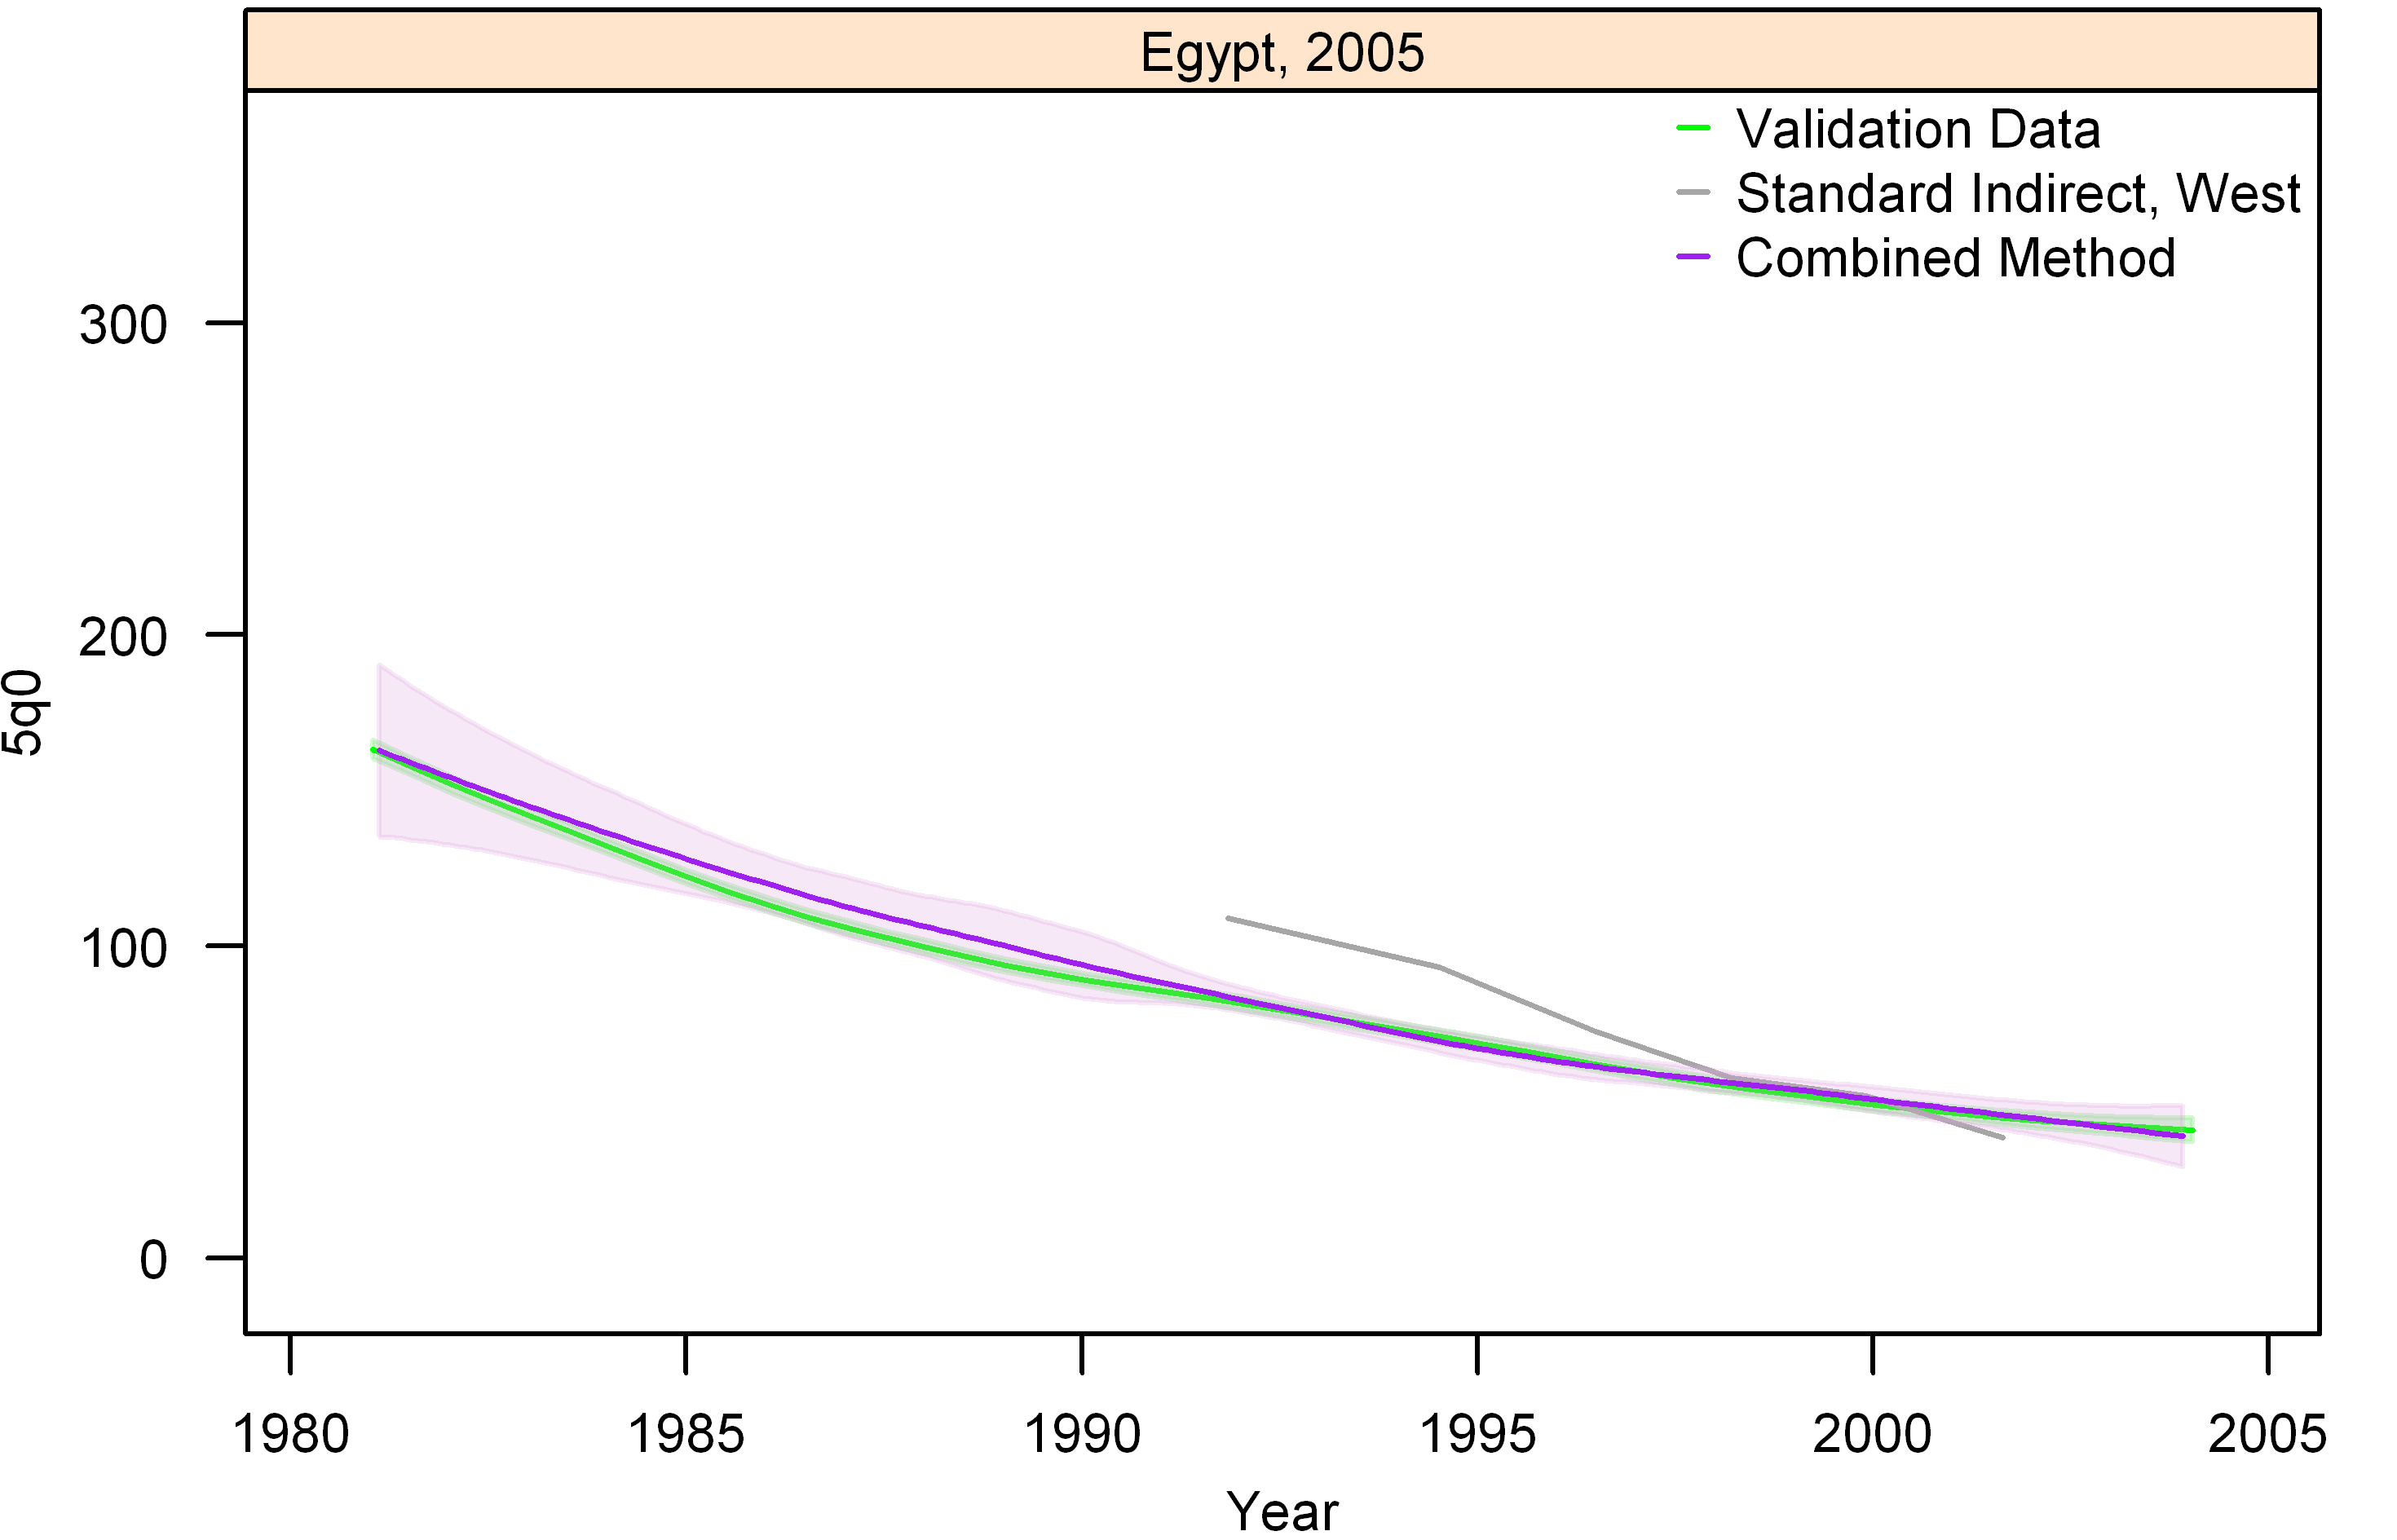 Graphs of estimates from summary birth histories using the best-performing combined method and the standard indirect (West) method. Section I, Egypt, 2005.